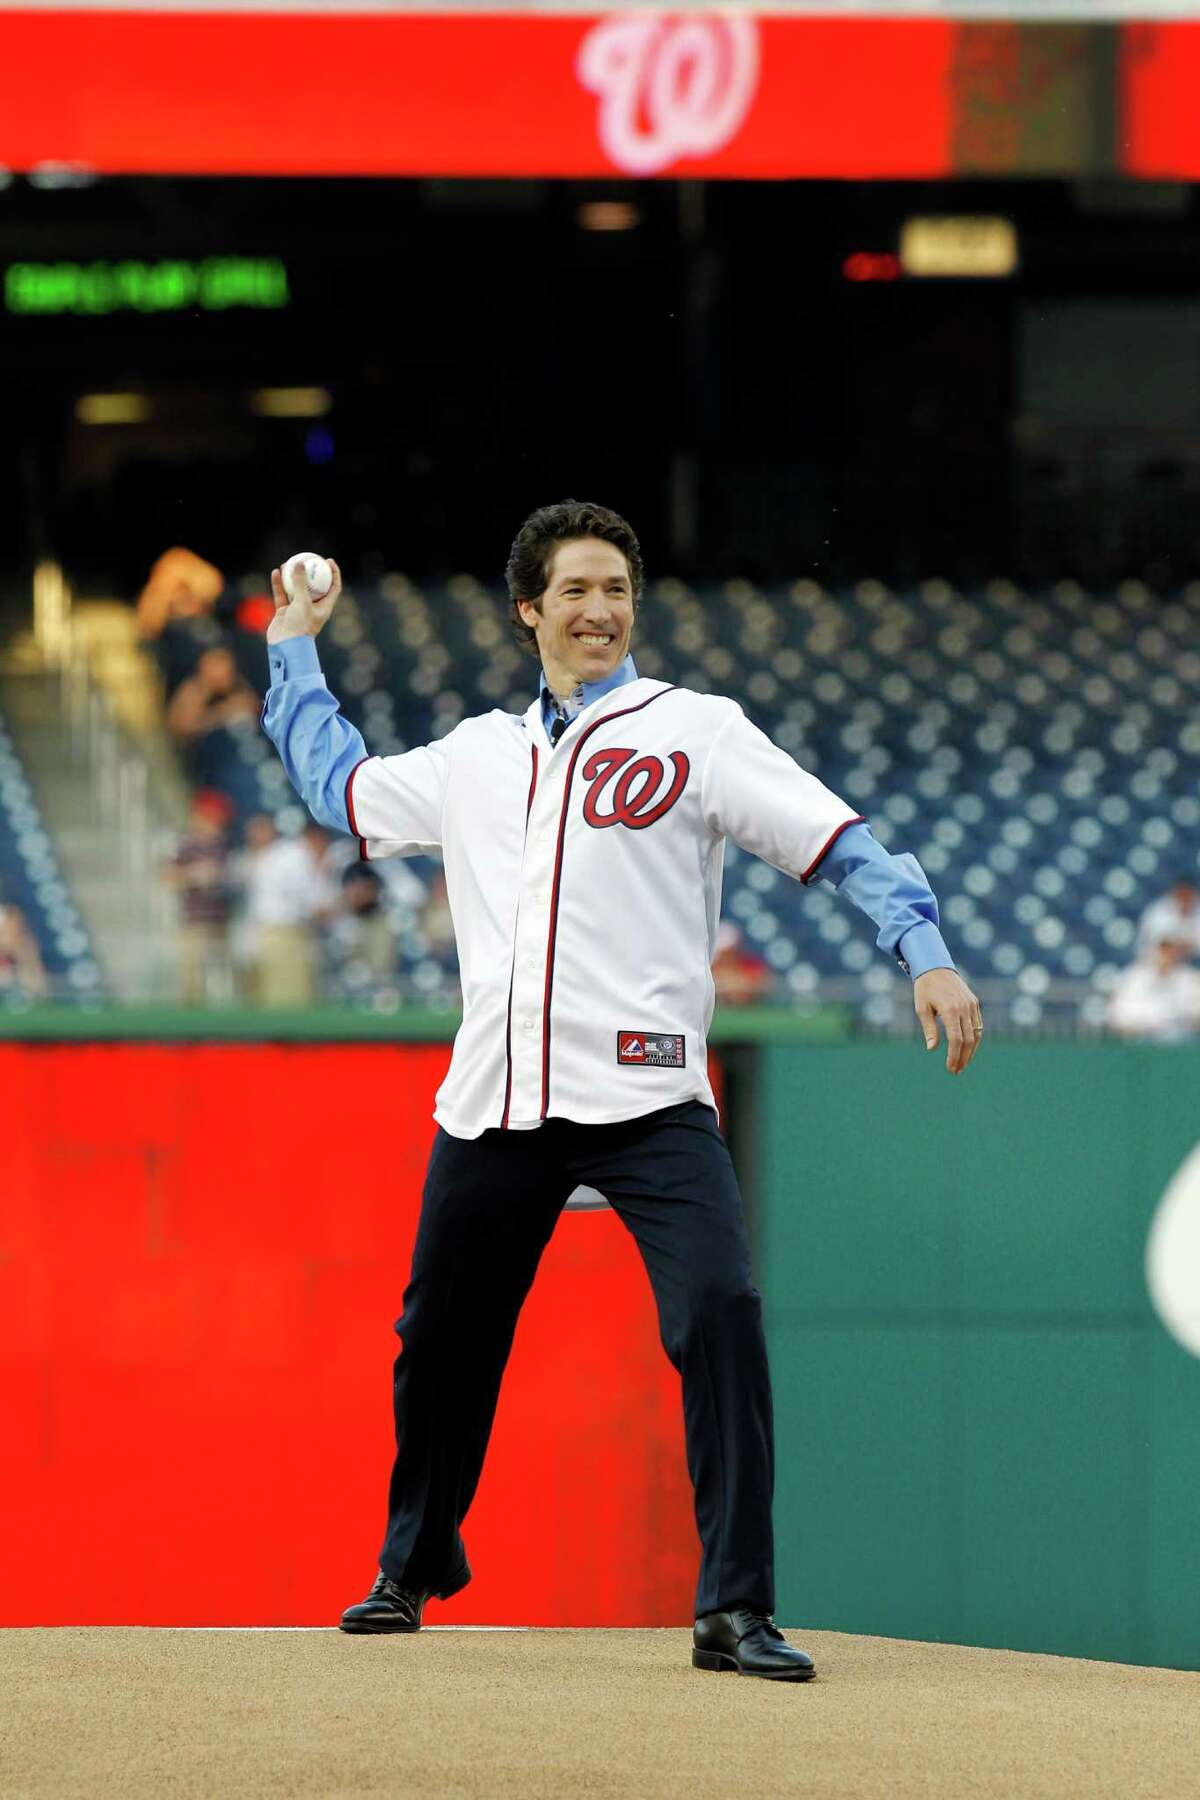 Joel Osteen throws out the ceremonial first pitch prior to a Washington Nationals baseball game against the Houston Astros in Washington, April 16, 2012. (AP Photo/Ann Heisenfelt)